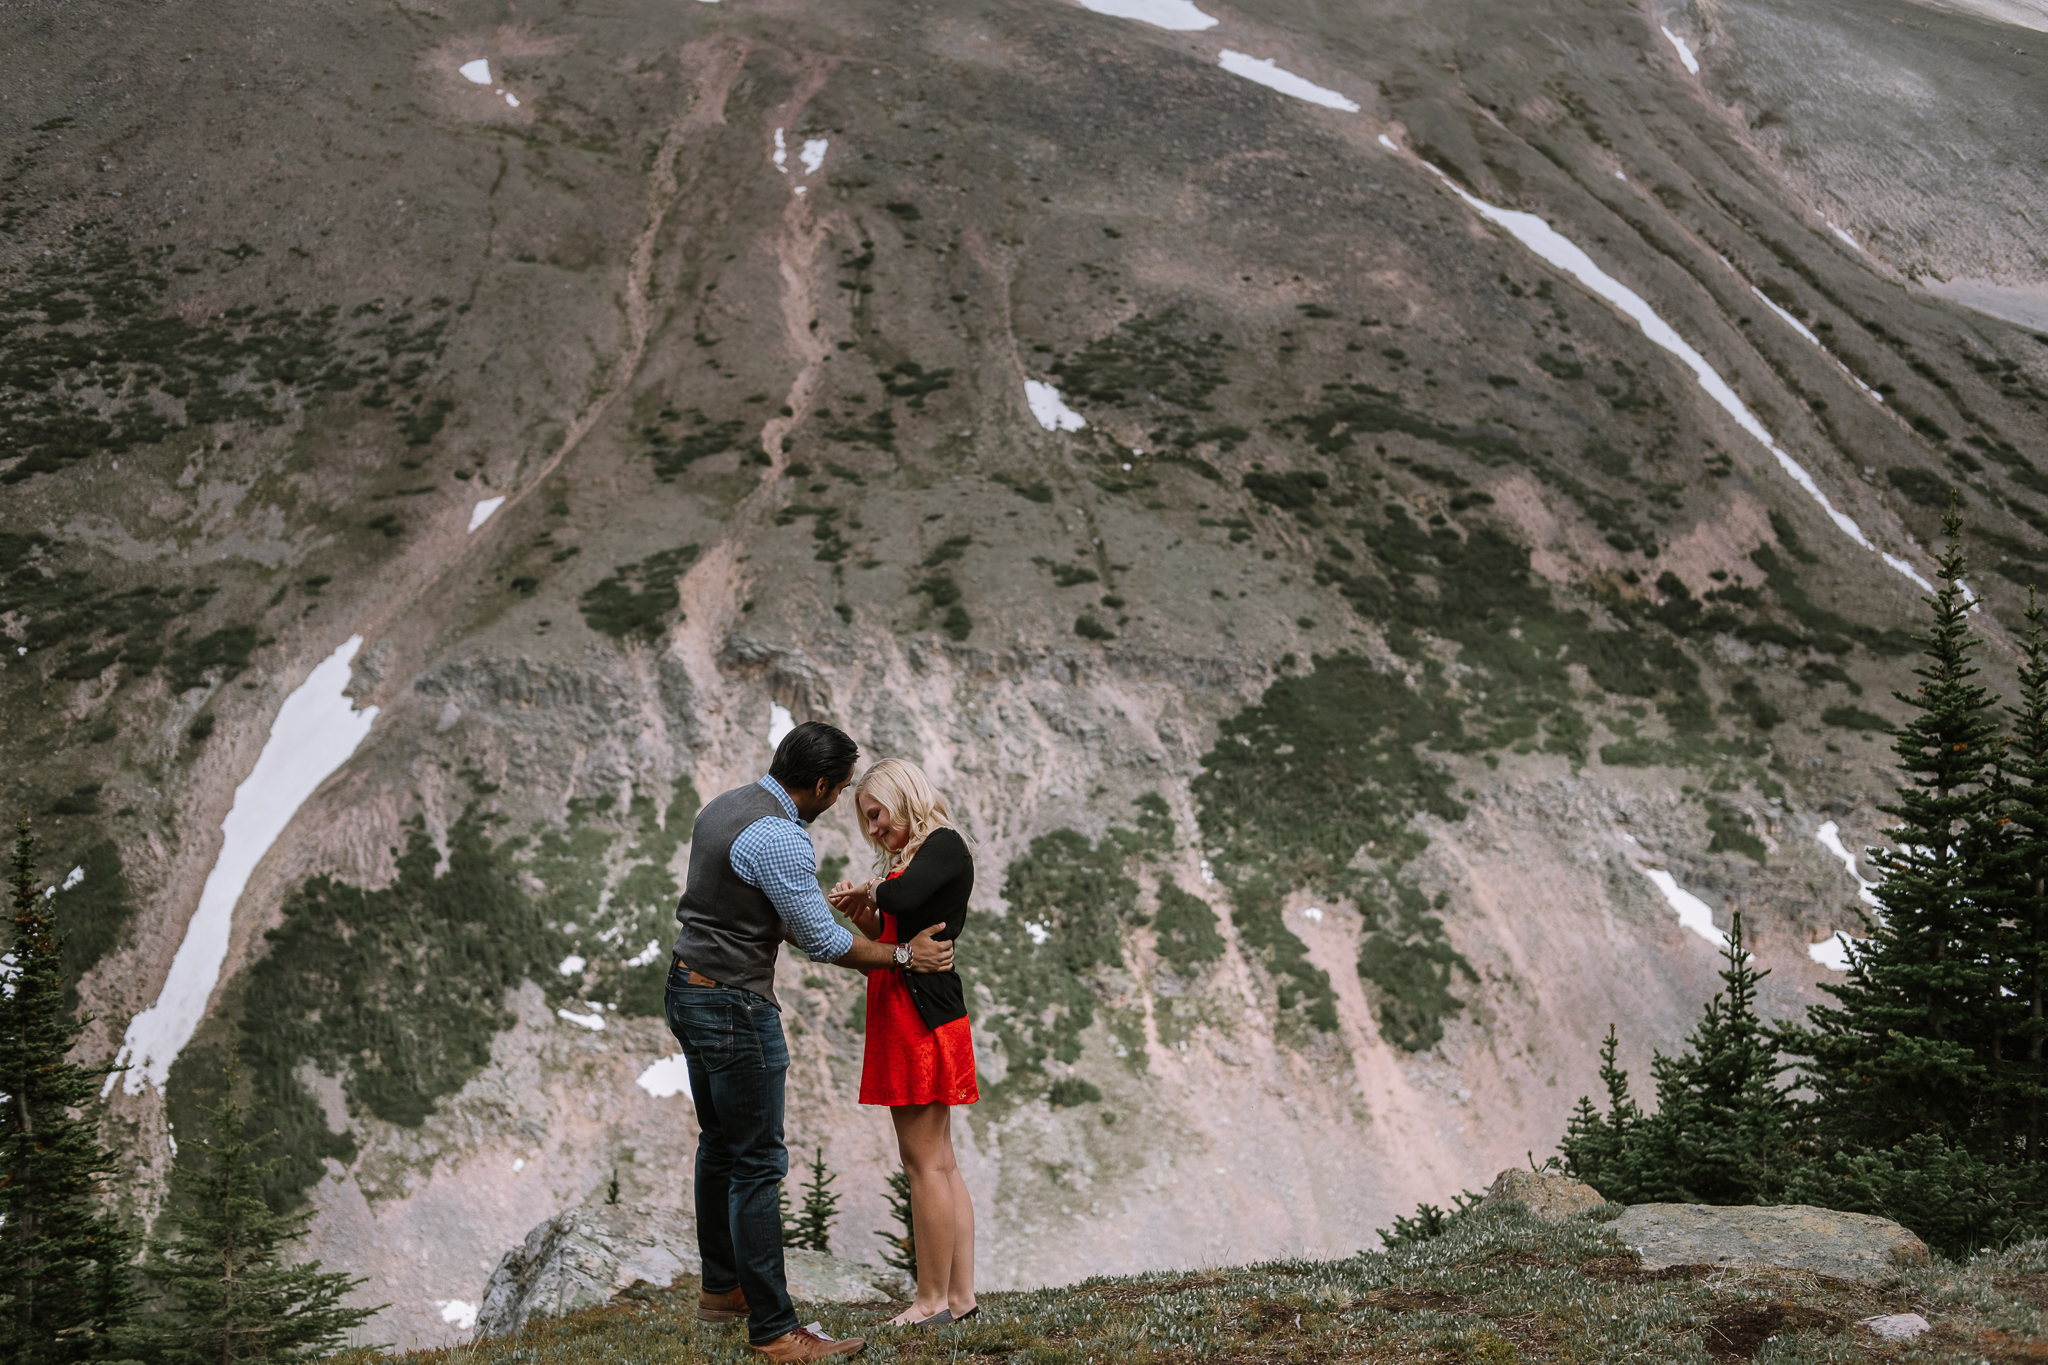 Banff Engagement Session Helicopter Proposal-10010